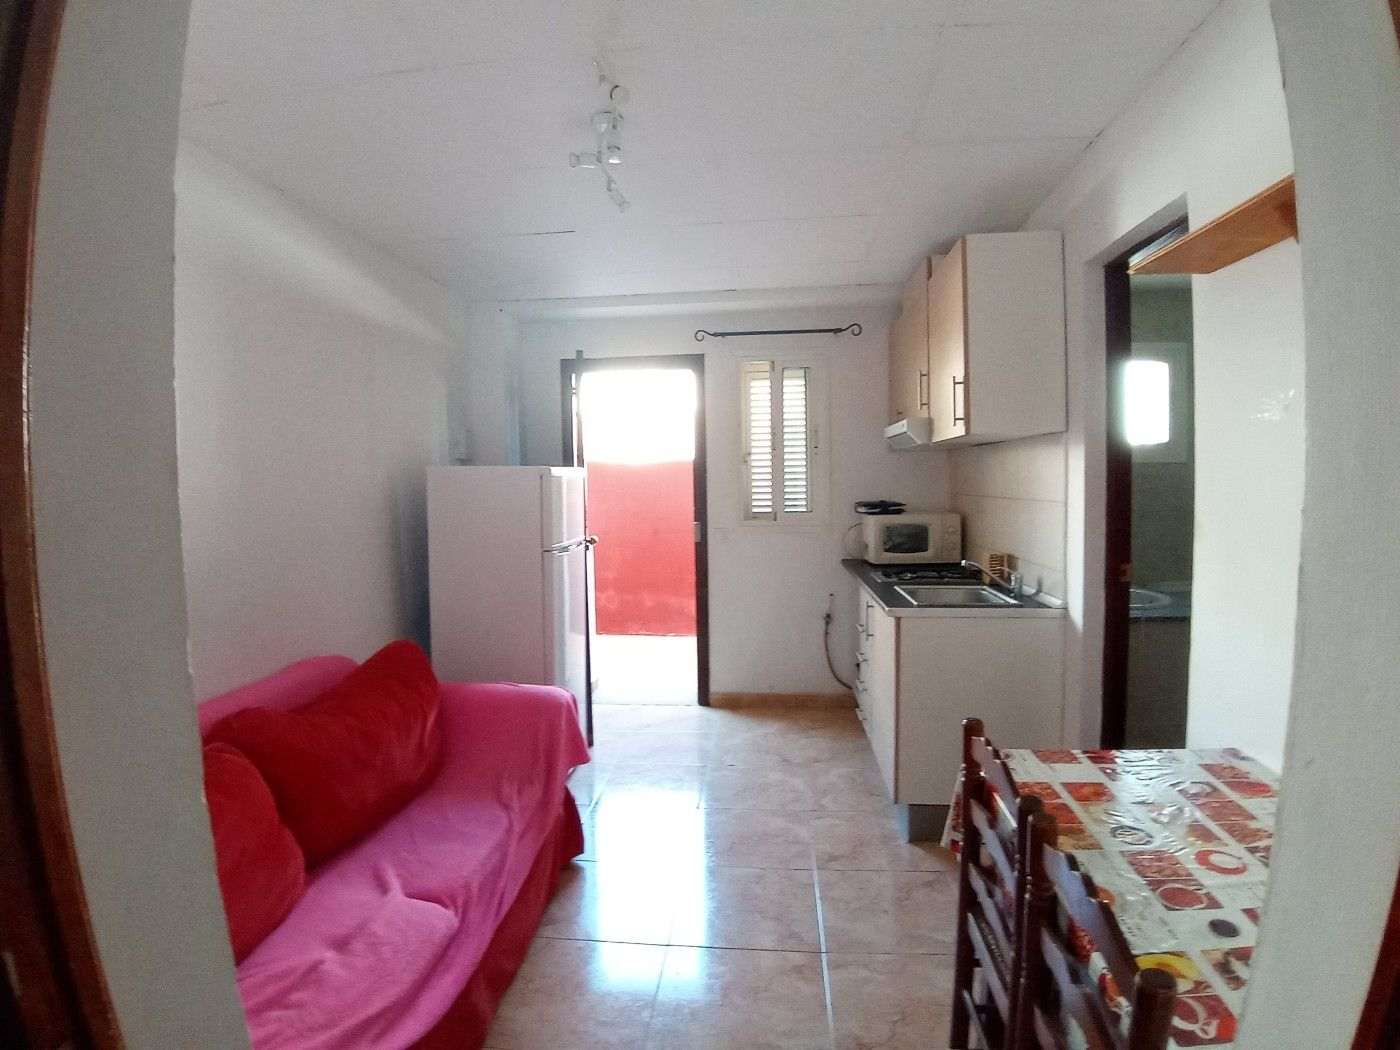 Location Appartement à Carrer bell turo, 6. Apartamento 1 habitación